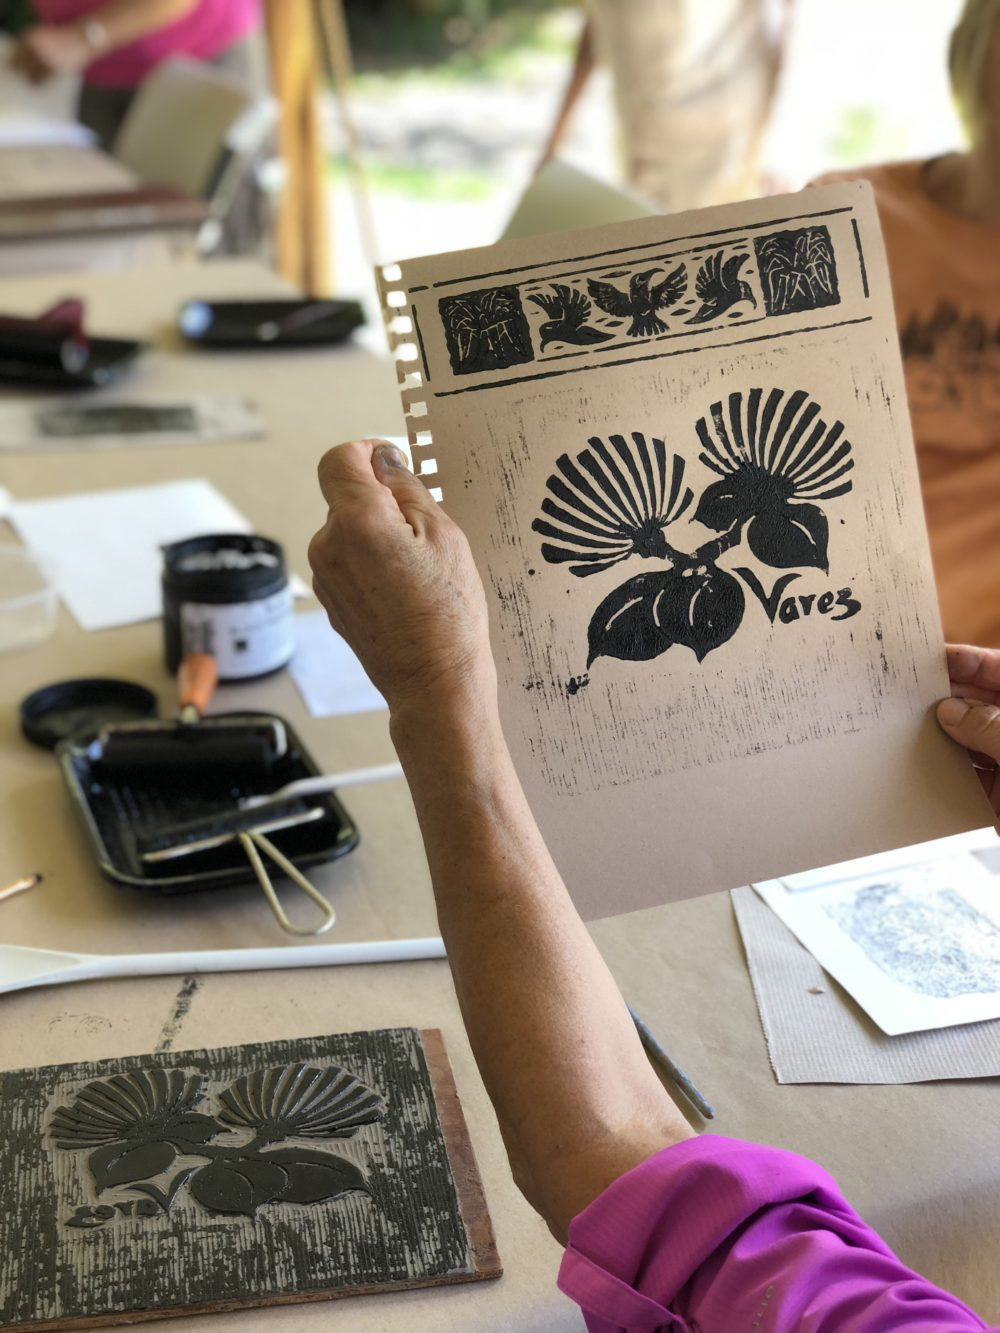 VACs Legacy Program Has Inspired A New Series Of Hawaiian Values Printmaking Classes Beginning In September Using Collection Donated Linoleum Block